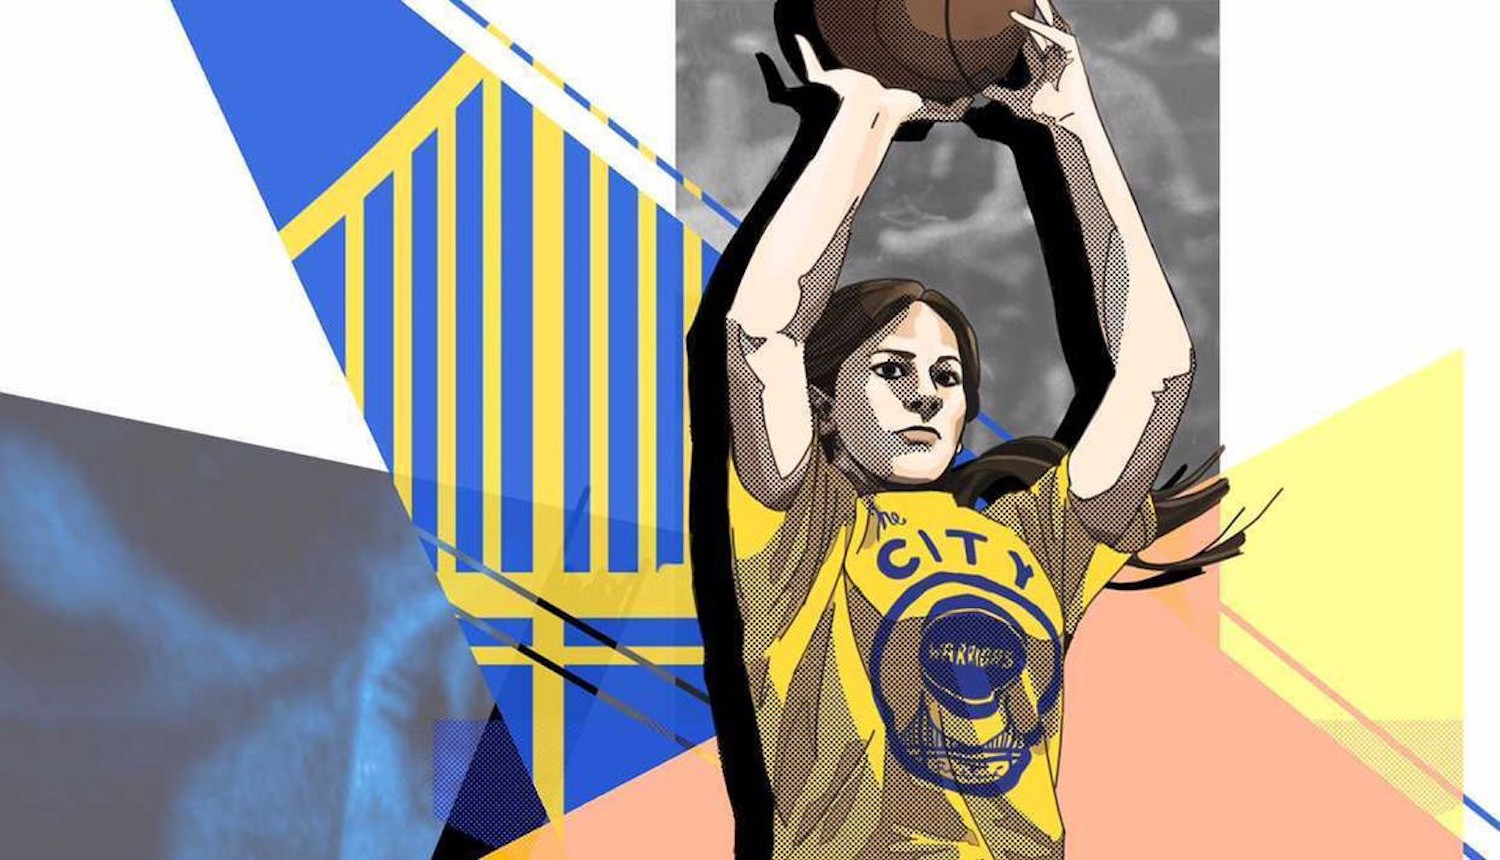 A woman with her hair in a ponytail and wearing a Warriors shirt, holding a basketball above her head. The background is geometric slices (four of abstract patterns in different colors, and one of Golden Gate Bridge as seen in the Warriors logo) that overlap each other.